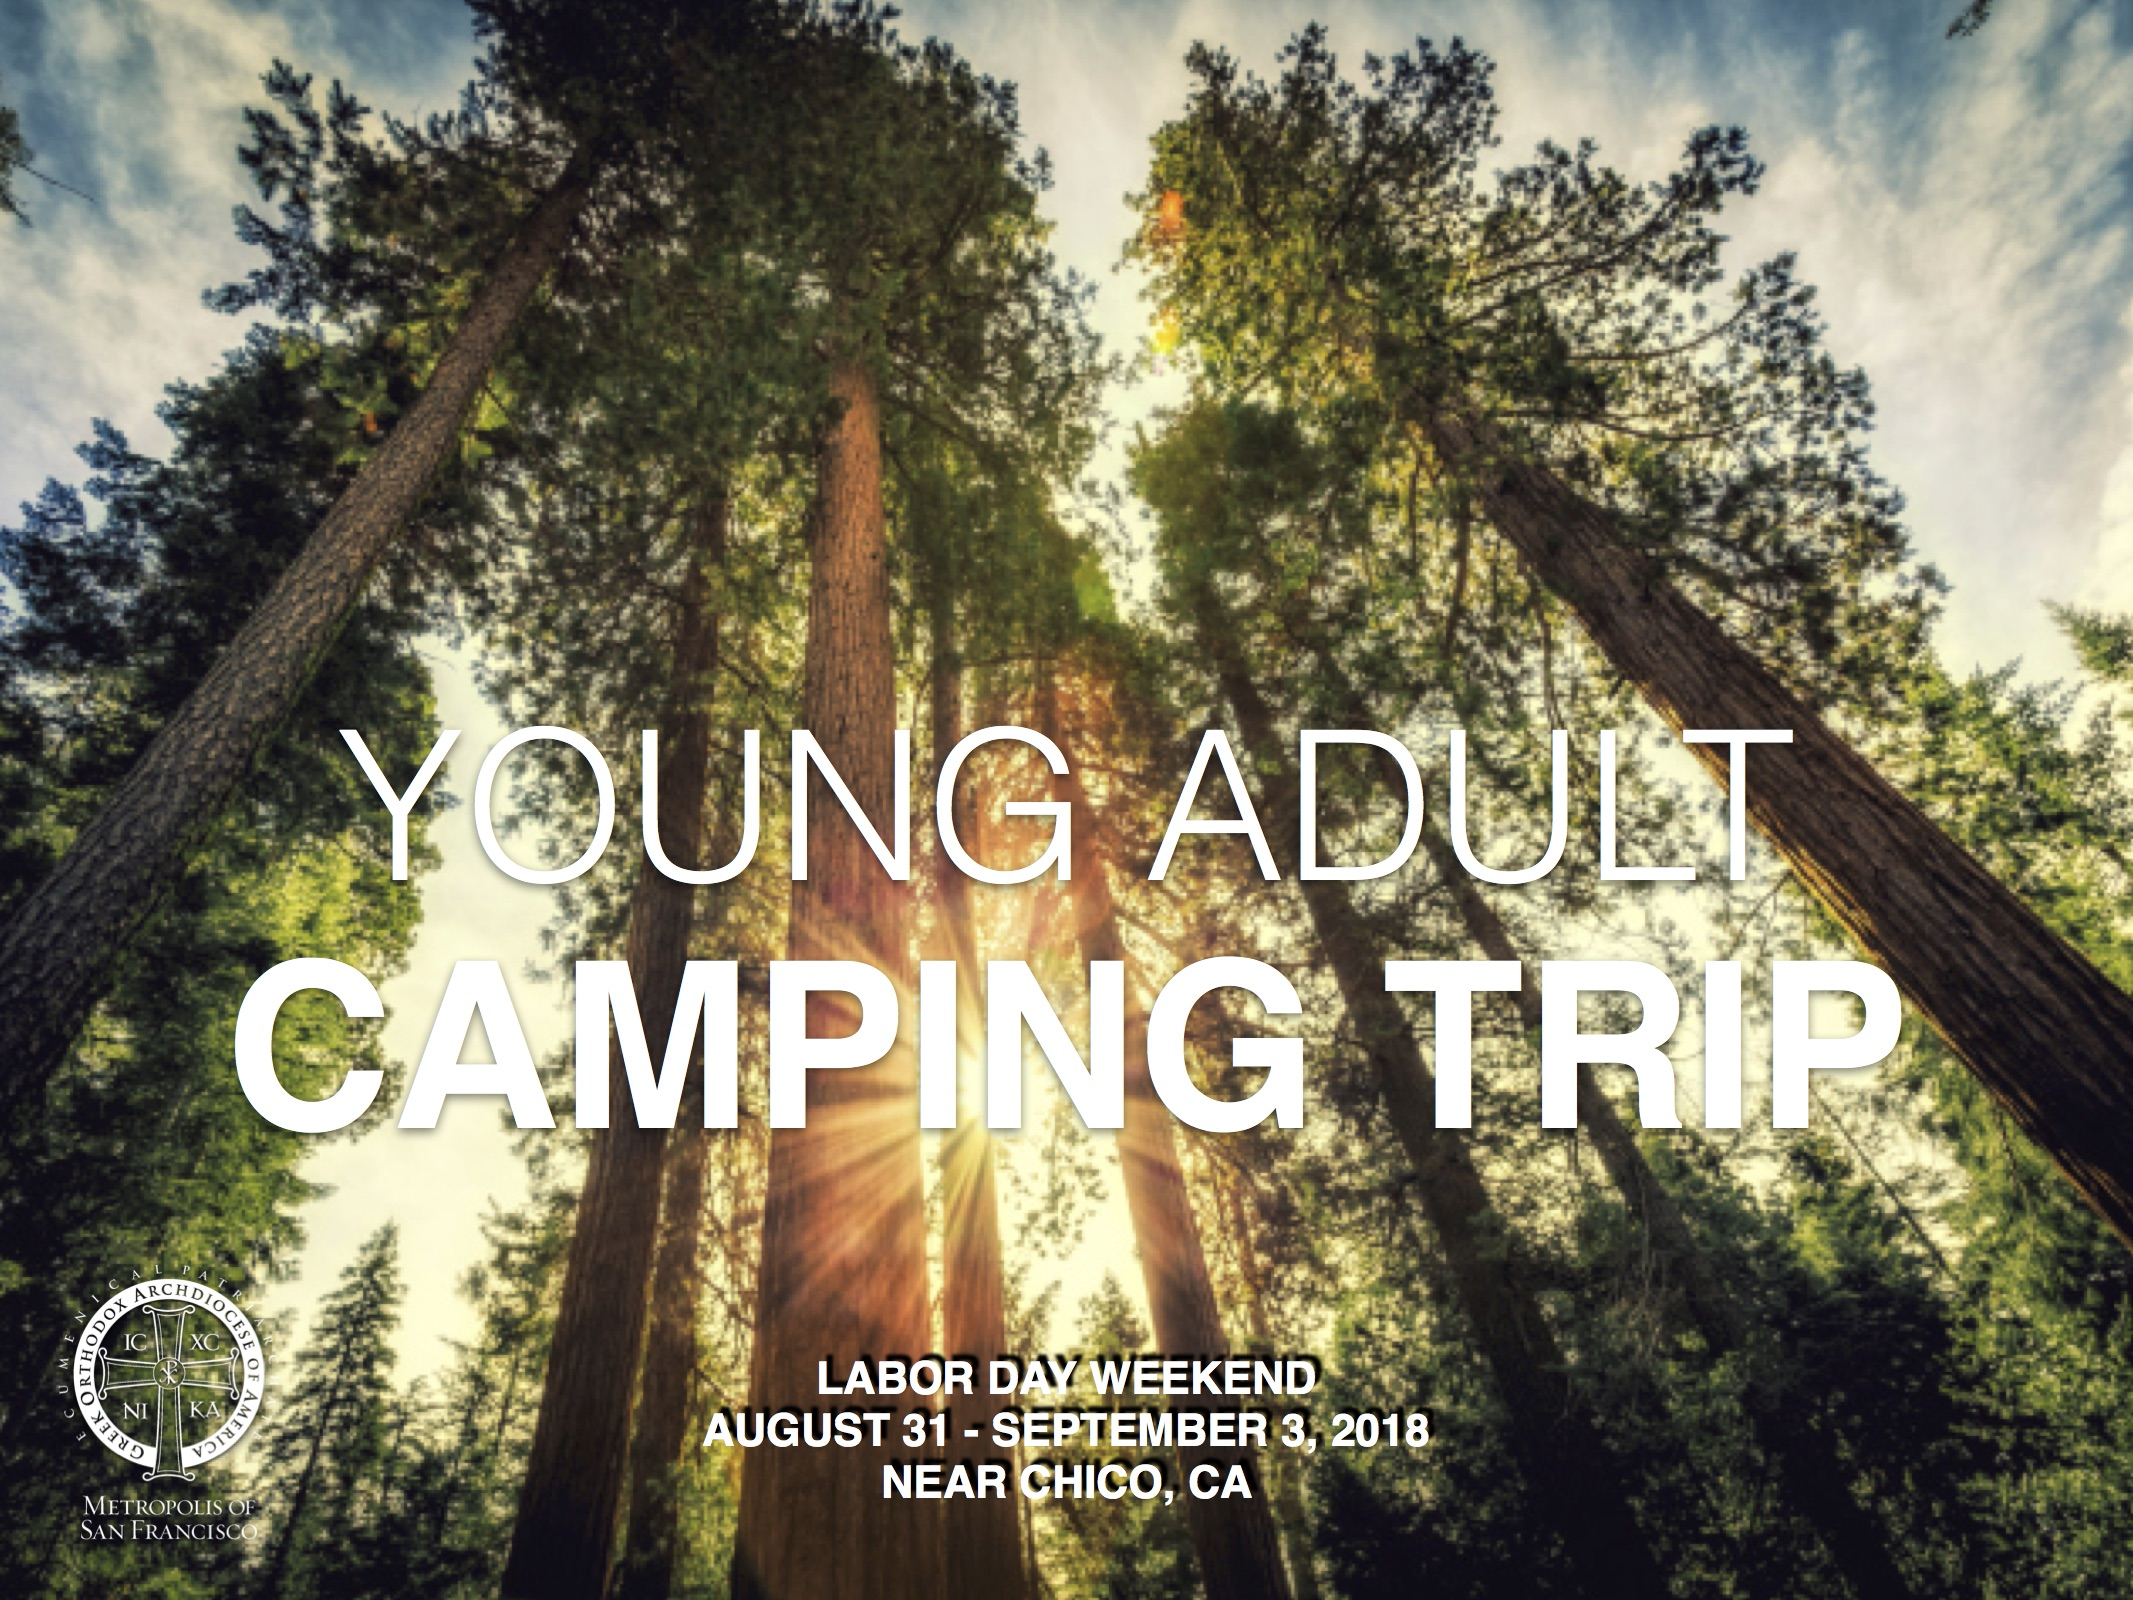 Young Adult Camping Trip FLYER.jpg